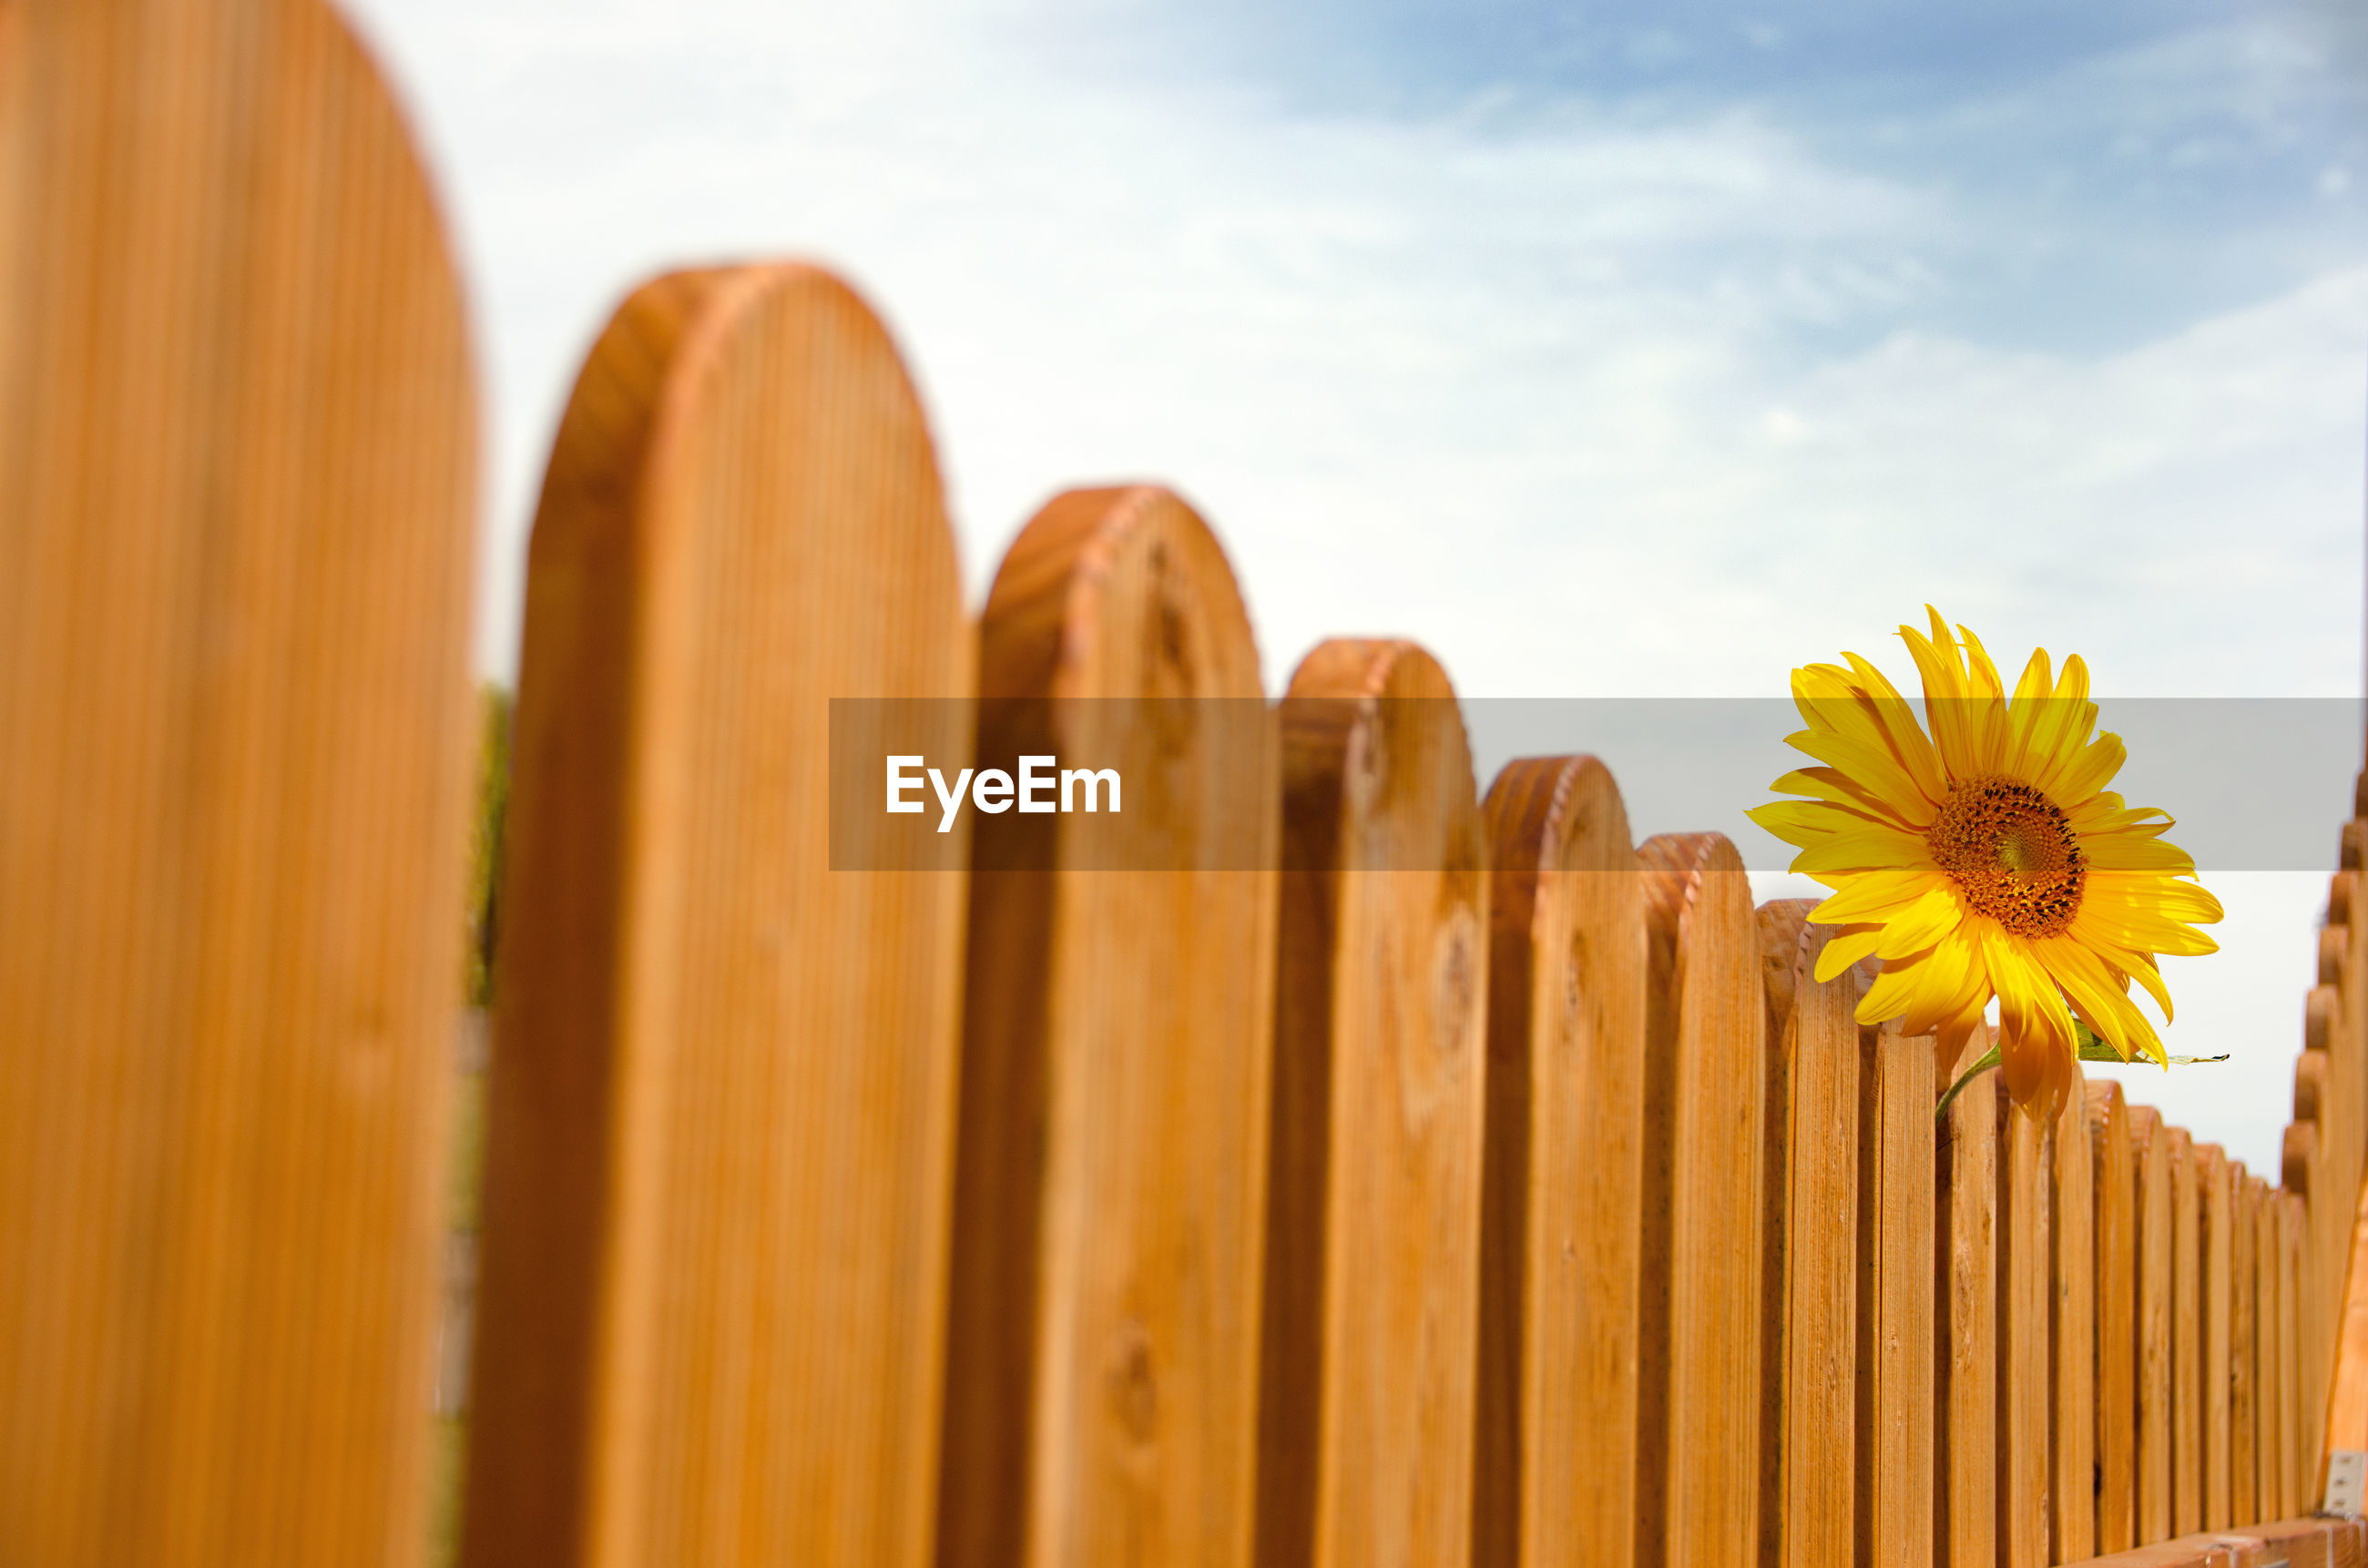 CLOSE-UP OF YELLOW FLOWERING PLANTS ON WOODEN FENCE